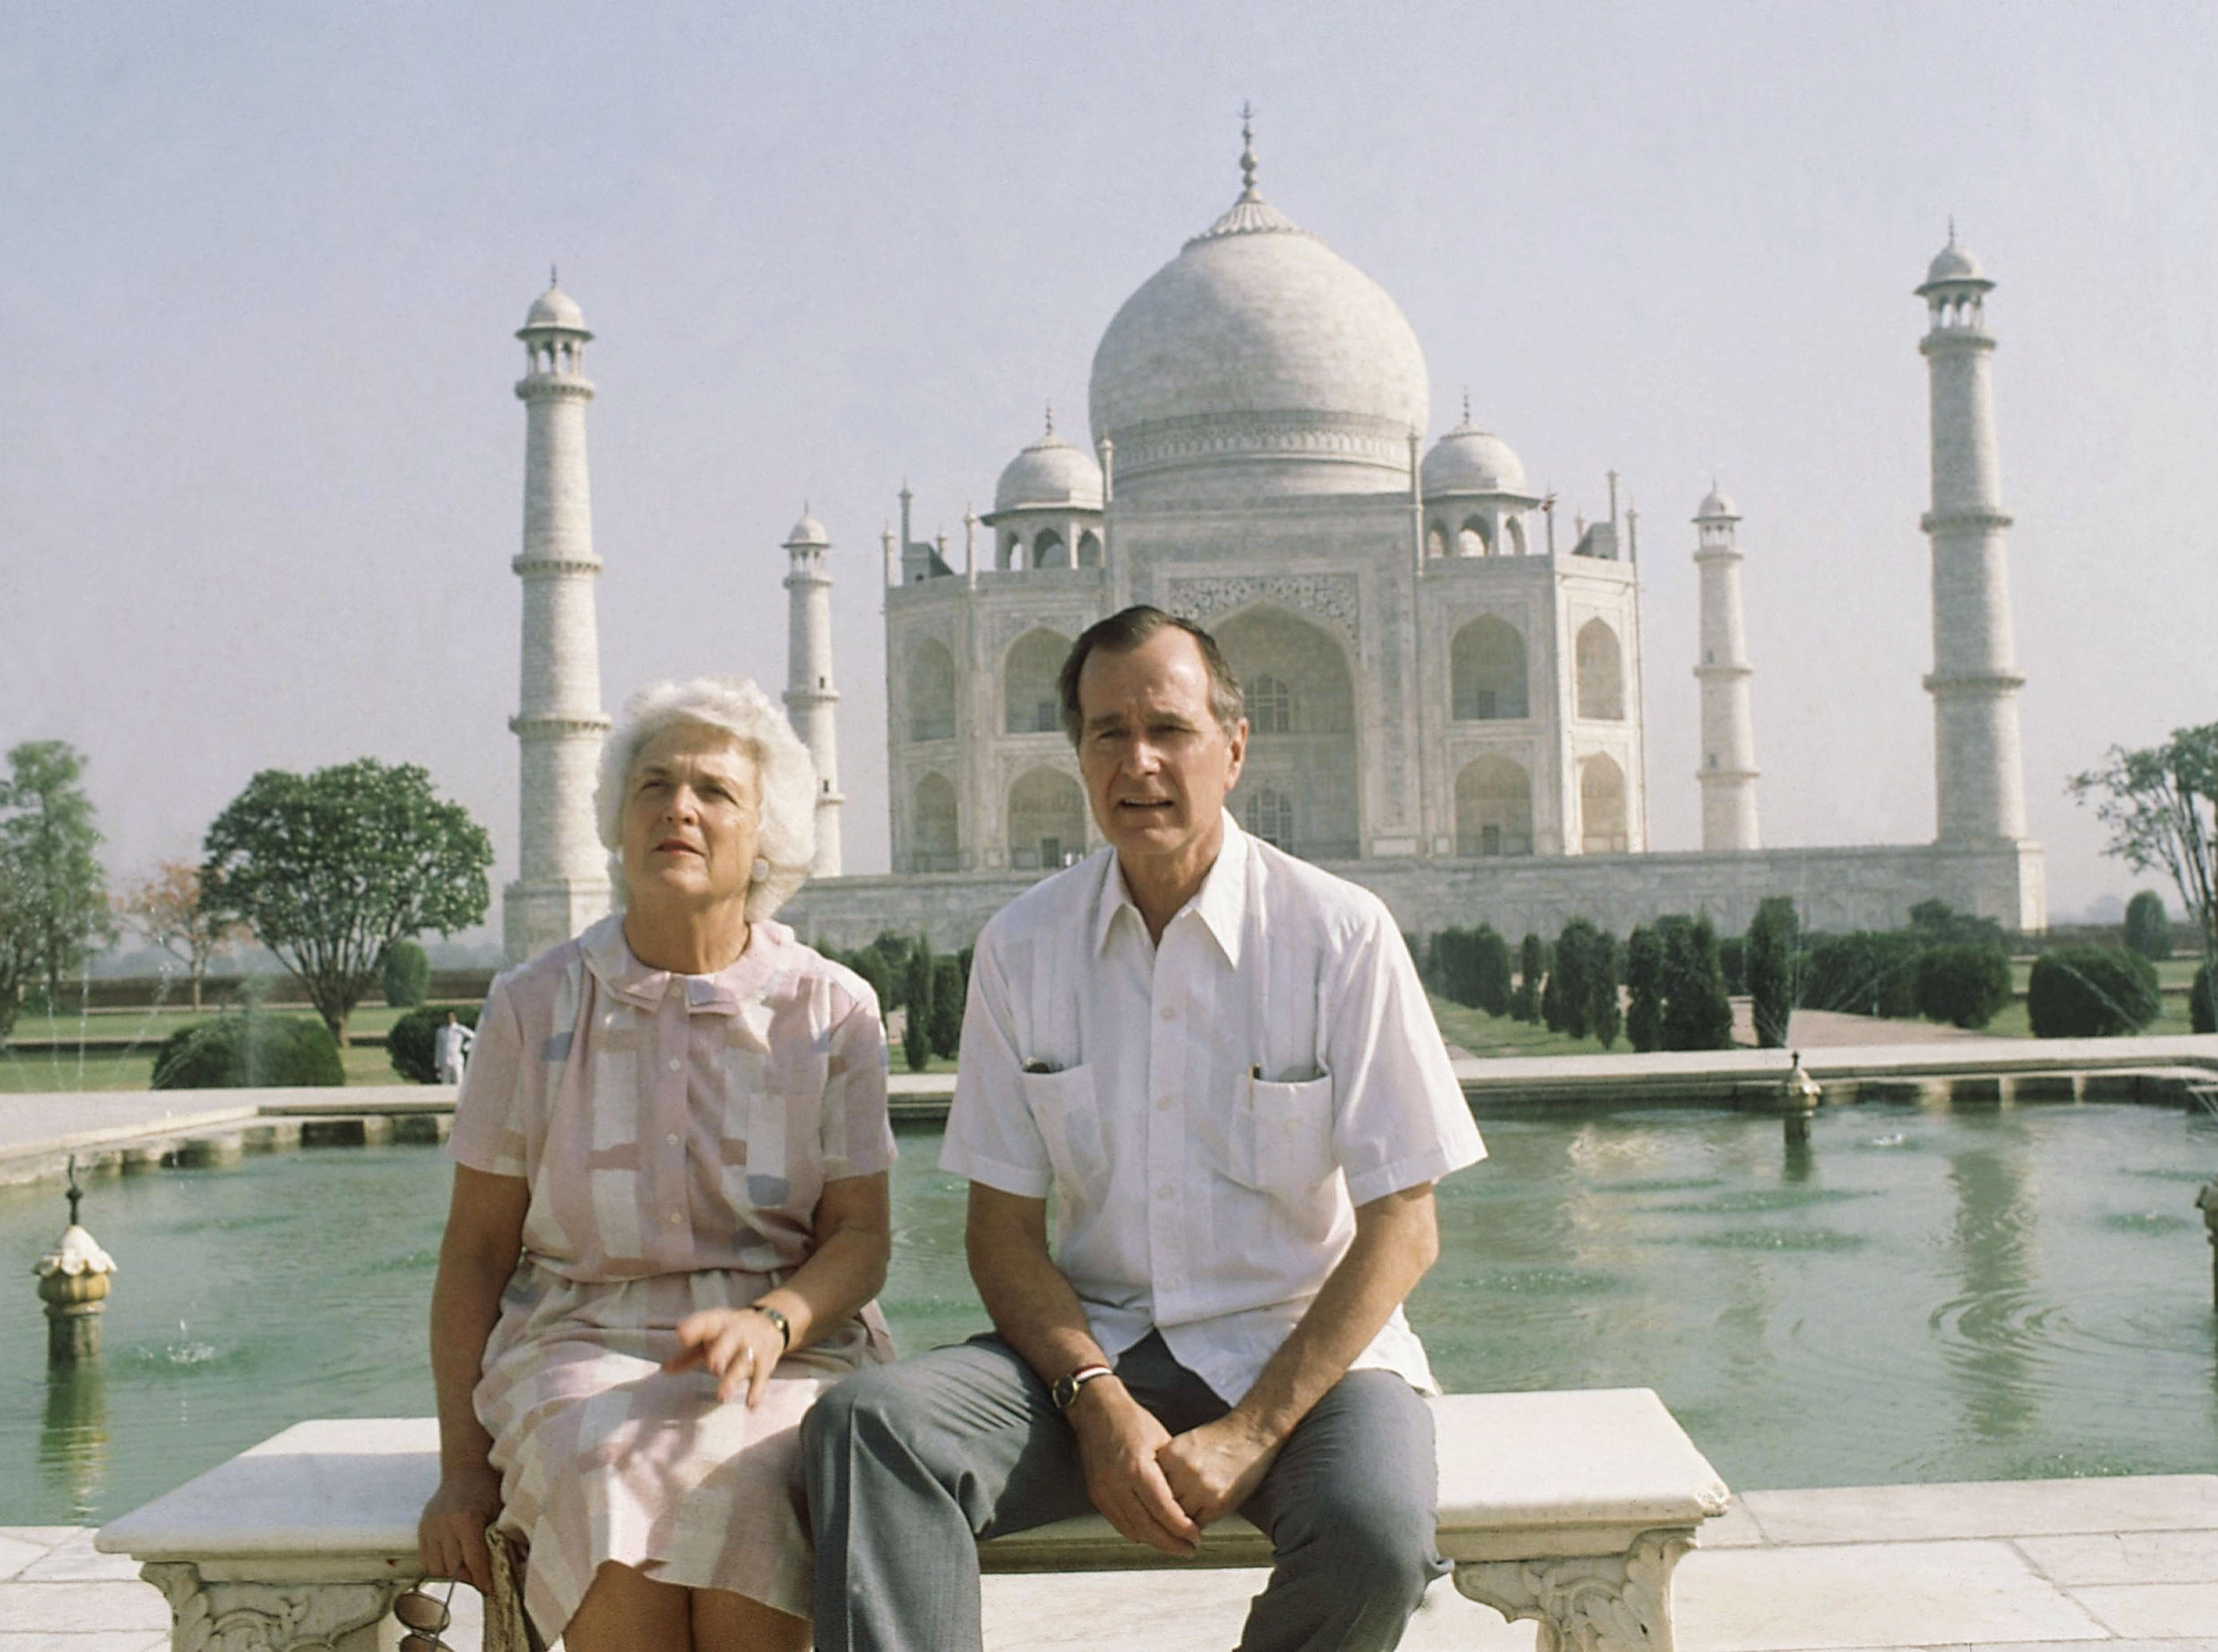 U.S. Vice President George H. W. Bush, right, and his wife Barbara Bush pose in front of the Taj Mahal, the 17th century monument to love was built by a Mughal Emperor Sahajahan in memory of his beloved queen who bore 14 children, Saturday, May 13, 1984, Agra, India. (AP Photo/Sondeep Shankar)